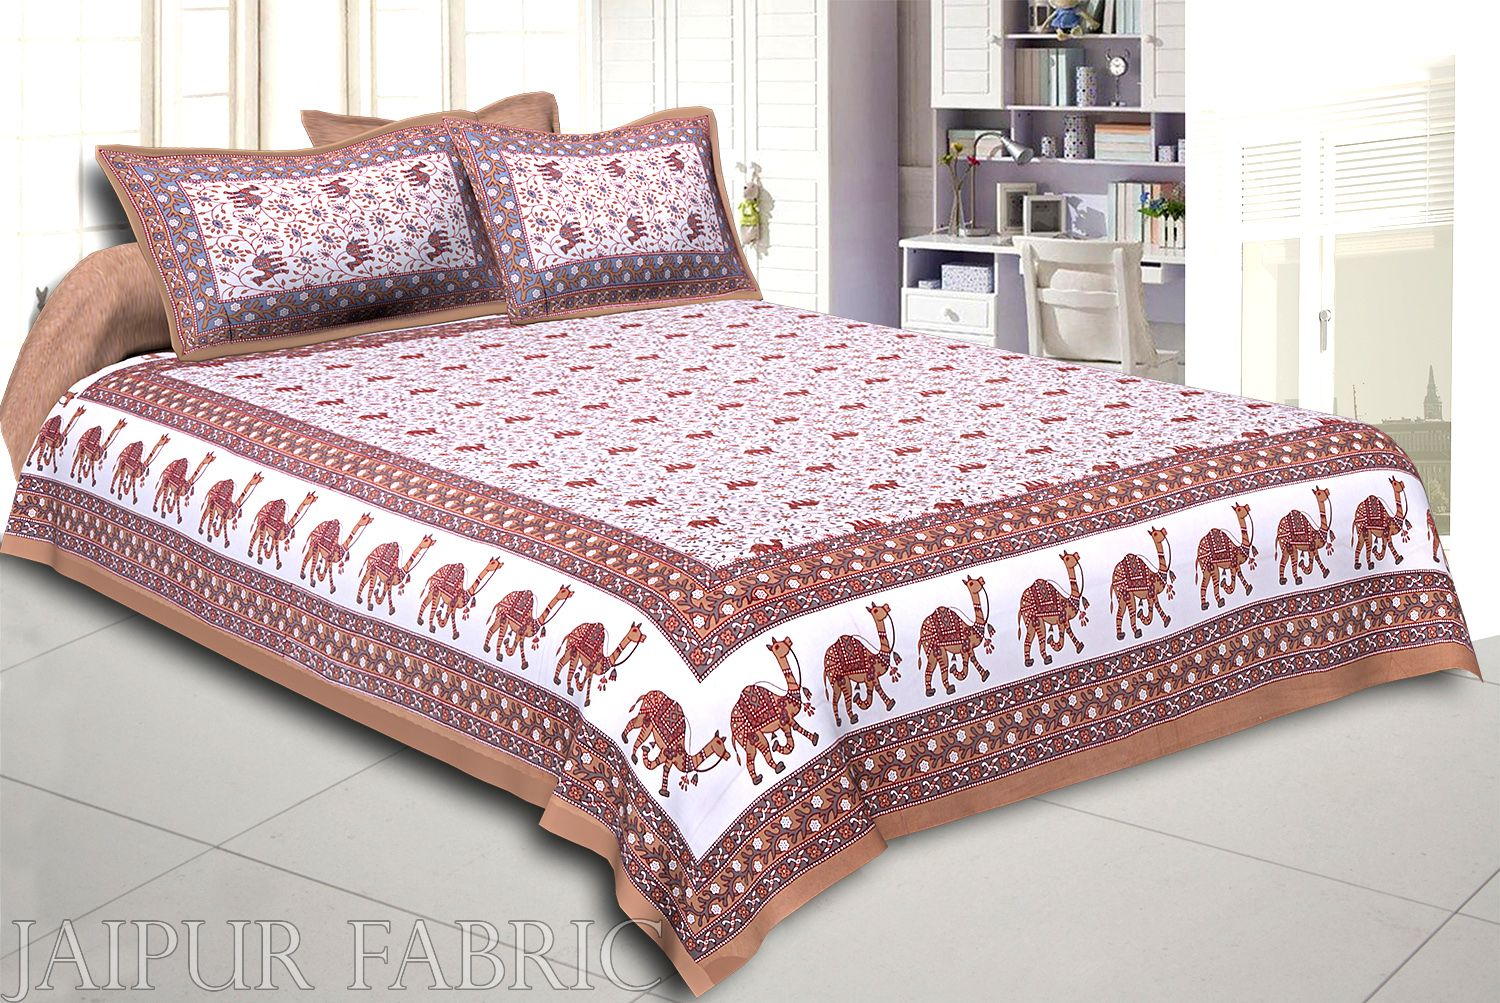 Khaki Base Jaipuri Camel Printed Cotton Double Bed Sheet